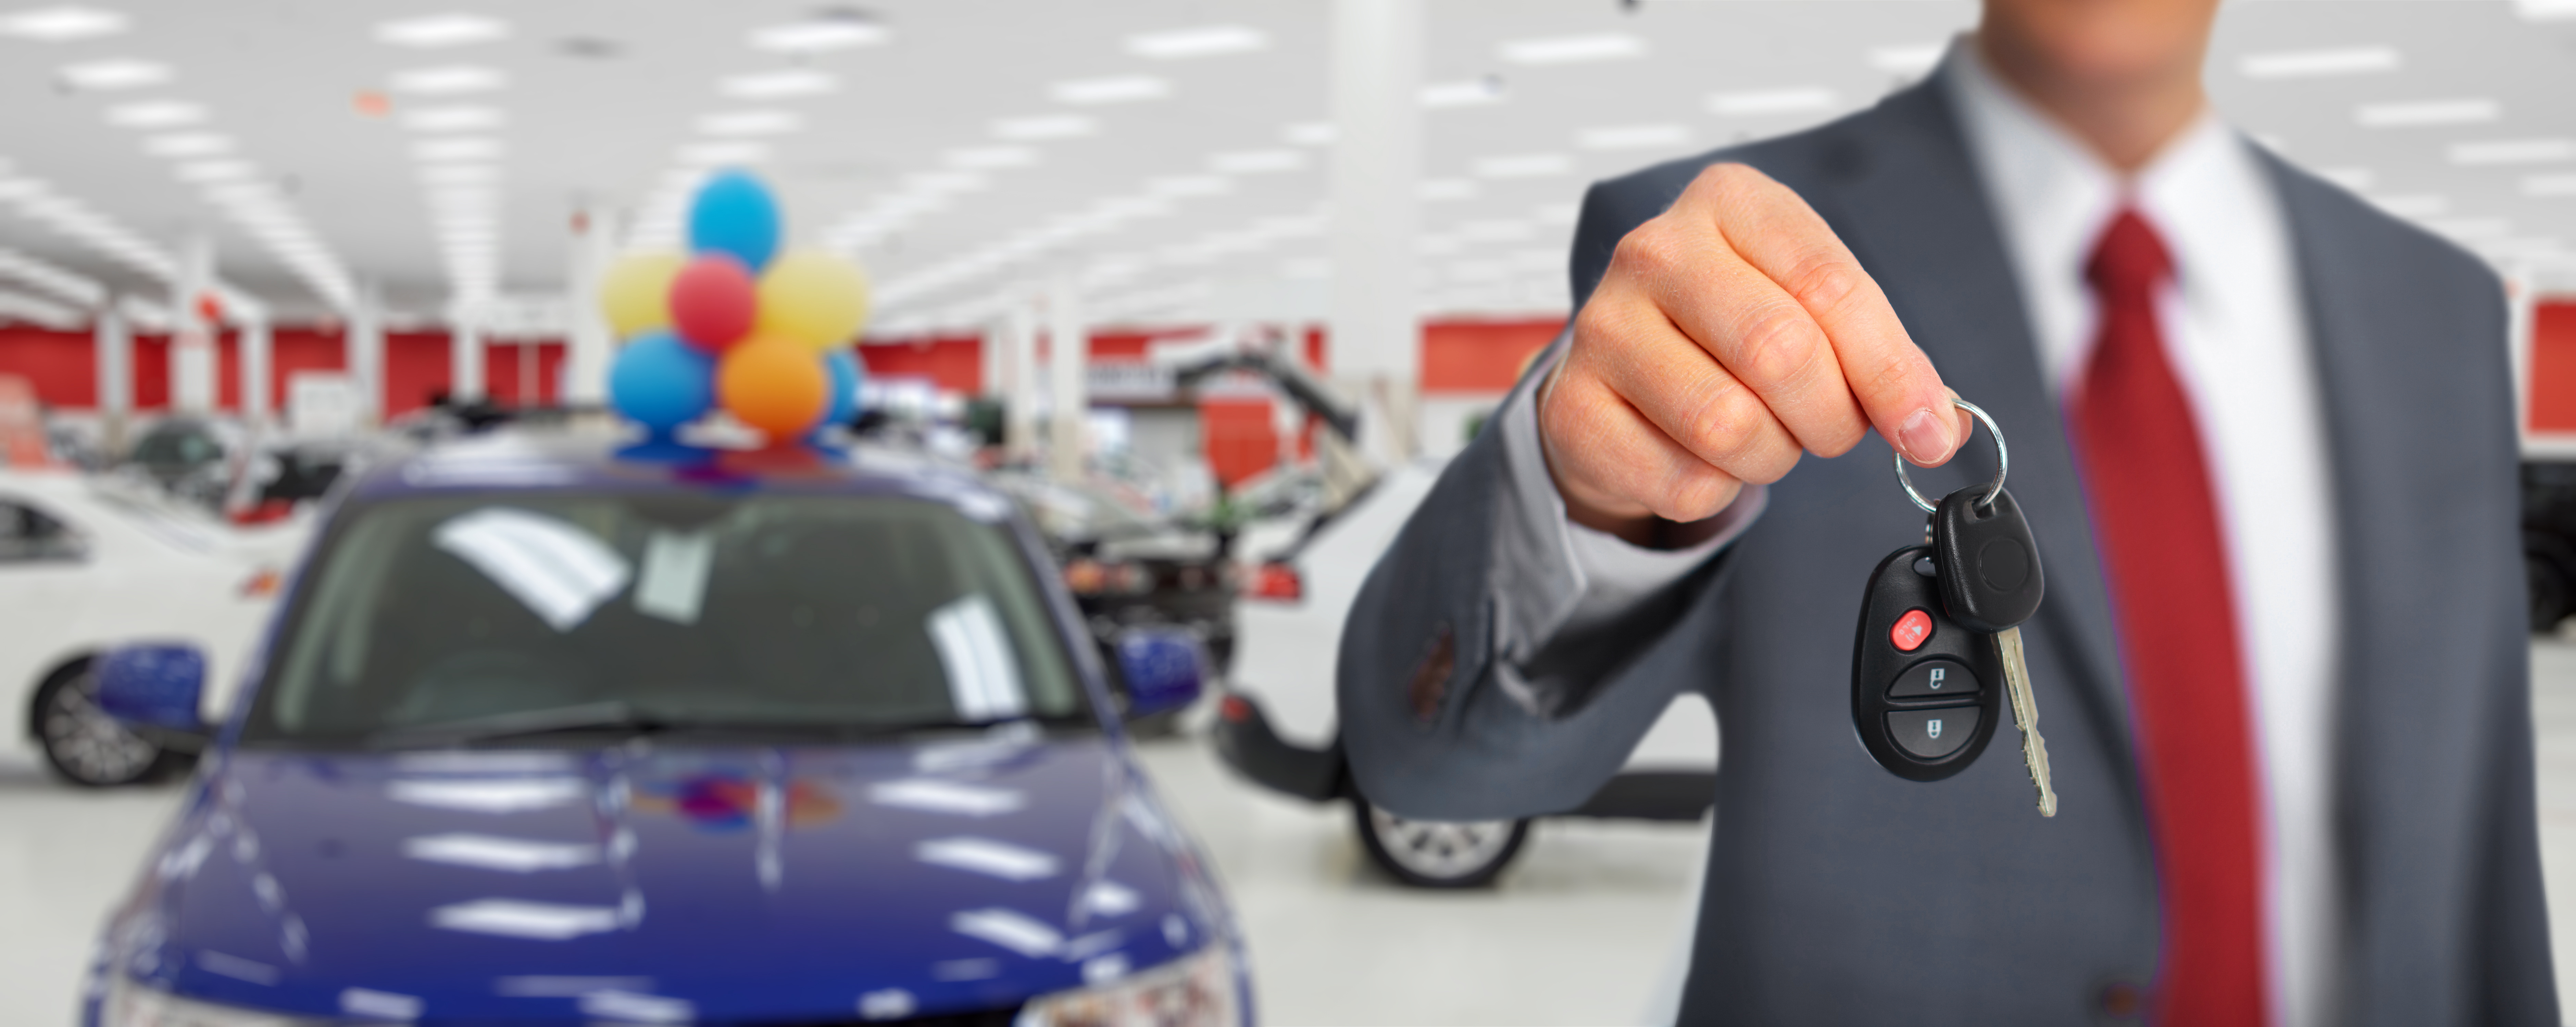 By what method can a car broker help me get a new car?